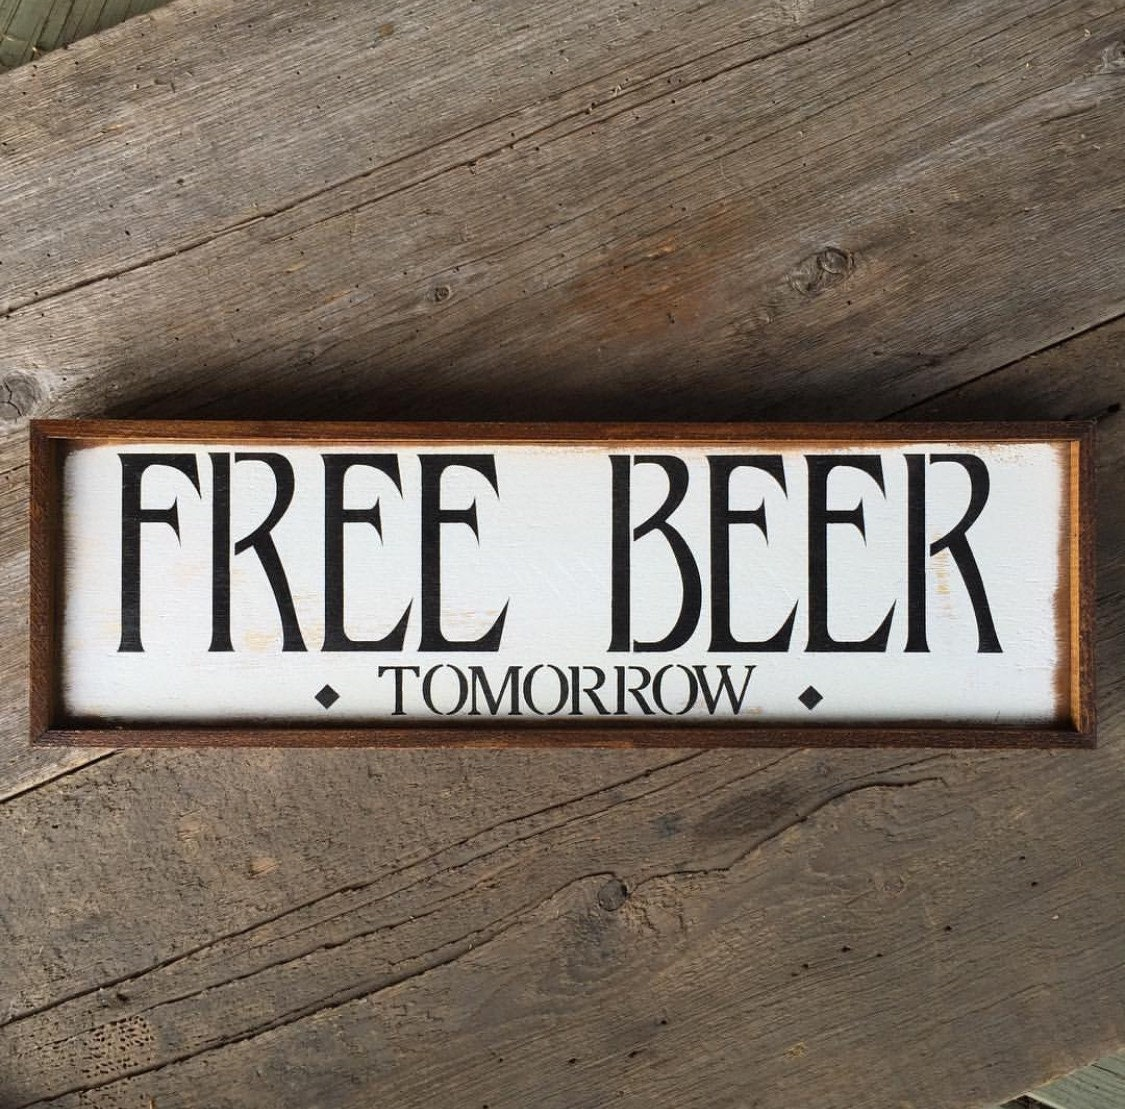 Free beer funny sayings signs home bar decor